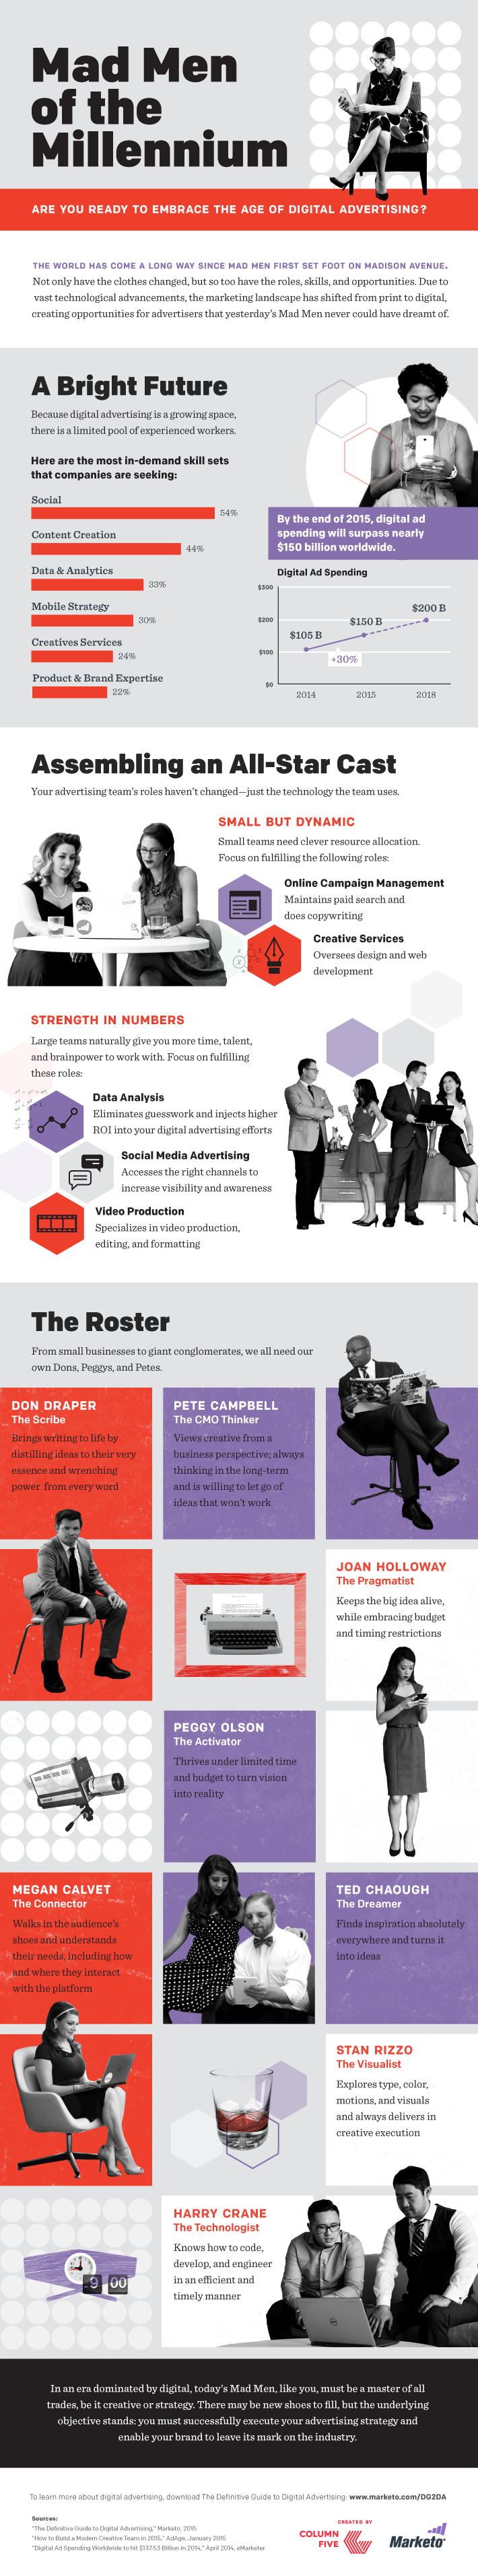 Mad-Men-of-the-Millennium-Marketo